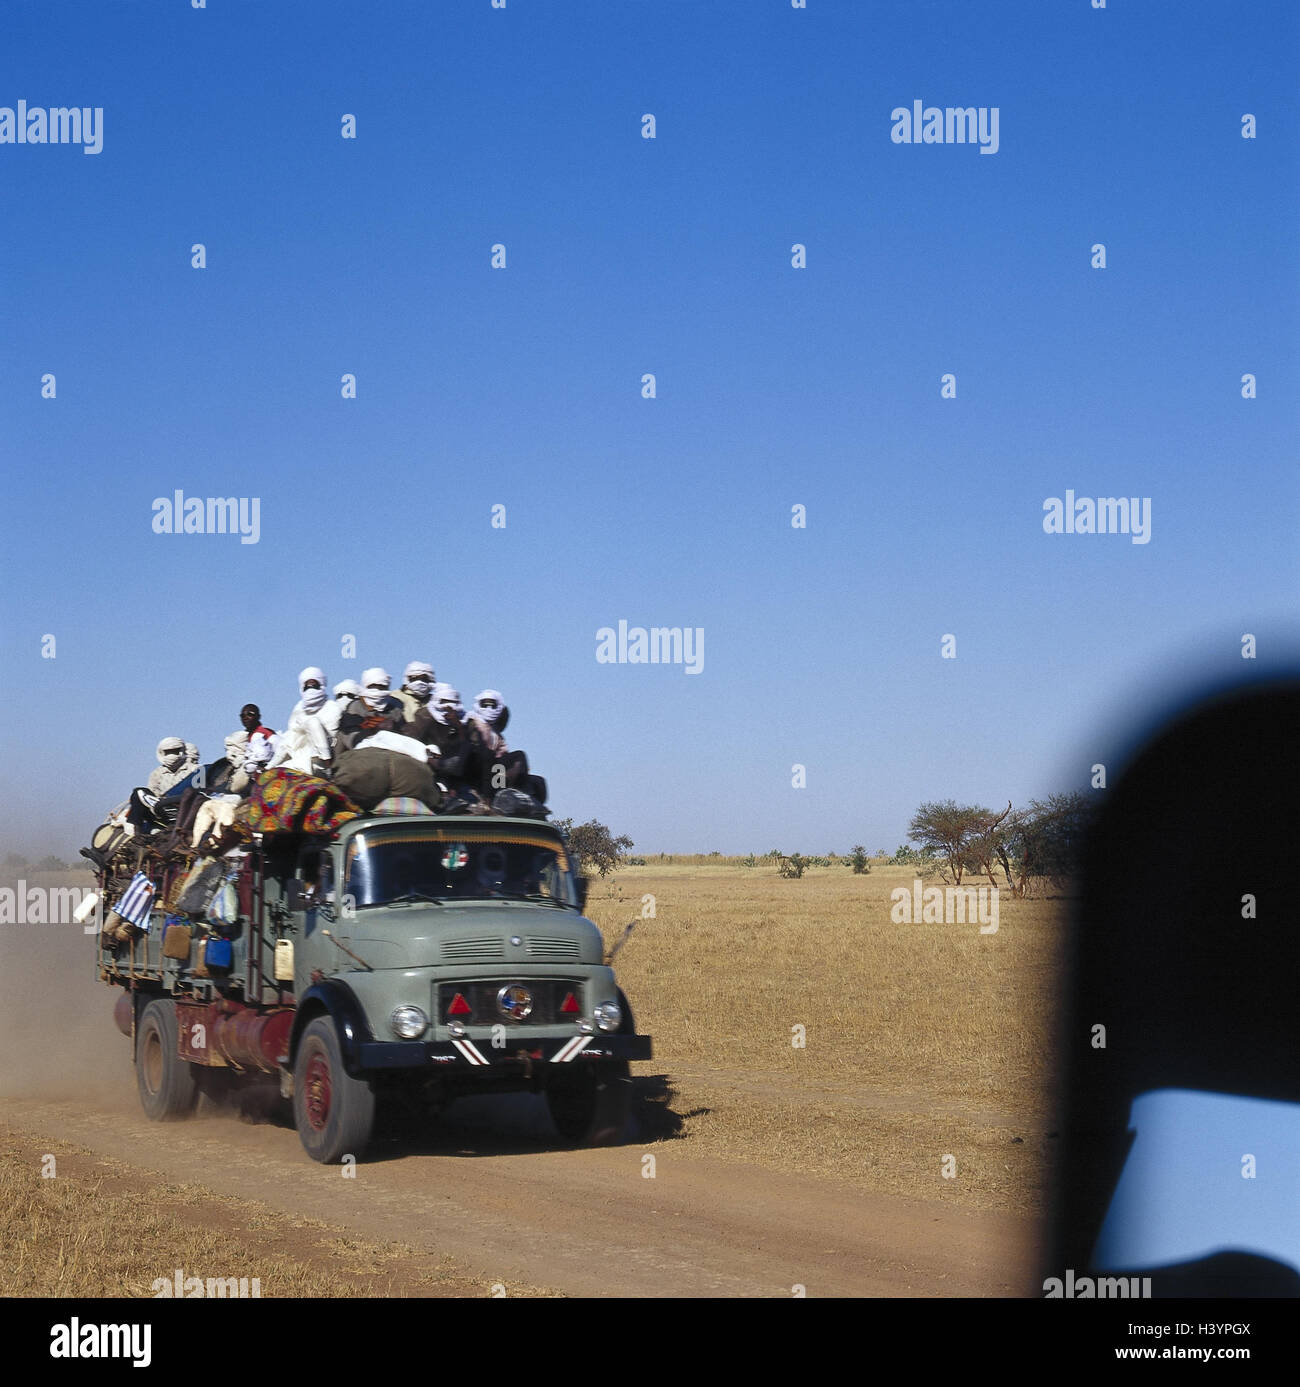 Chad, Borkou, wadi Doum, Sand runway, truck, charge, costs, people Central, Africa, landlocked country, Sahara, - Stock Image